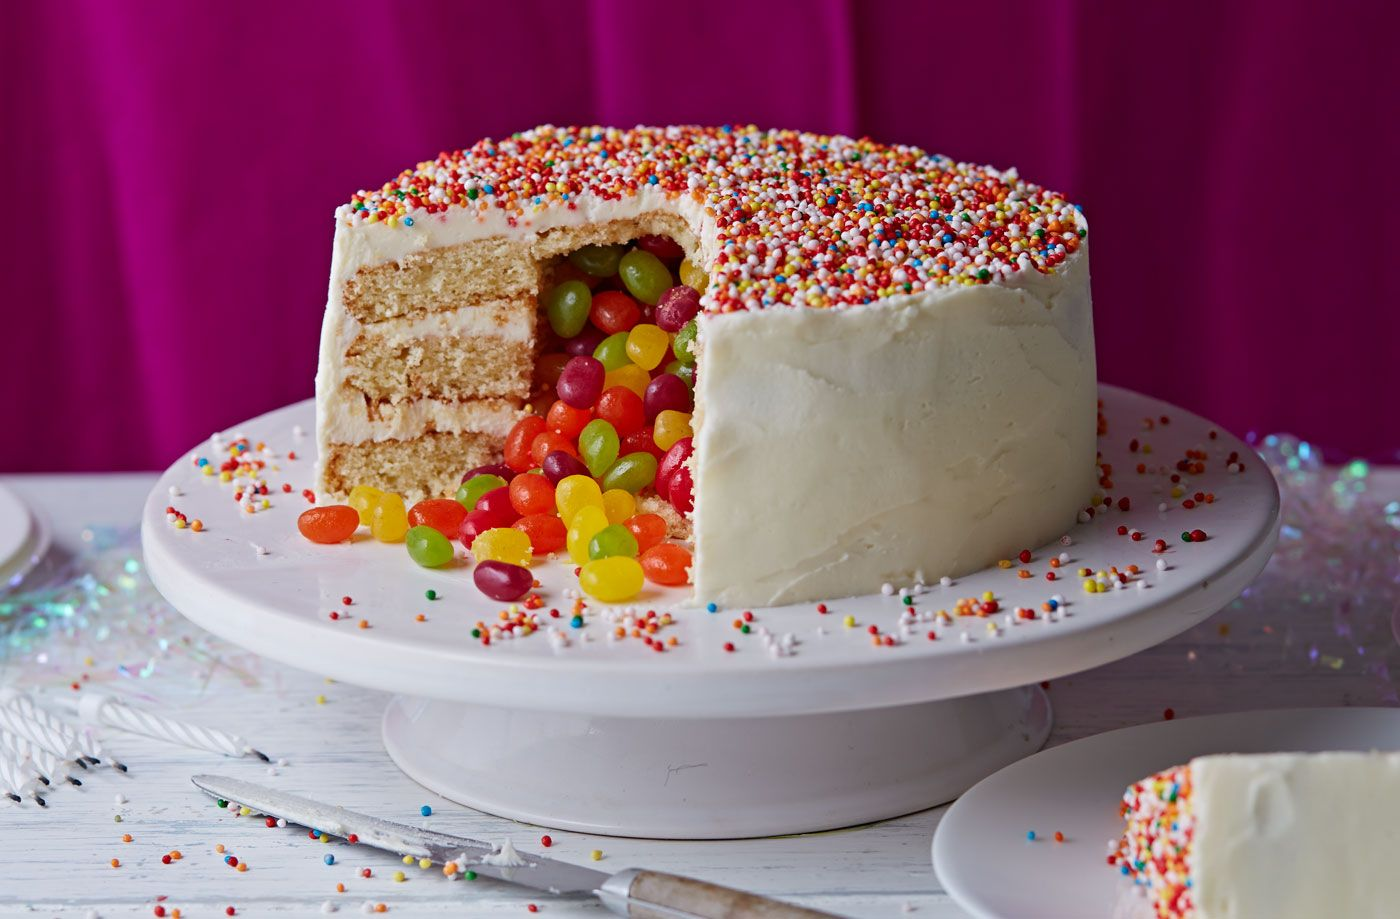 Surprise Piñata cake | Recipe | Homemade birthday cakes, Cool birthday cakes,  Pinata cake recipe